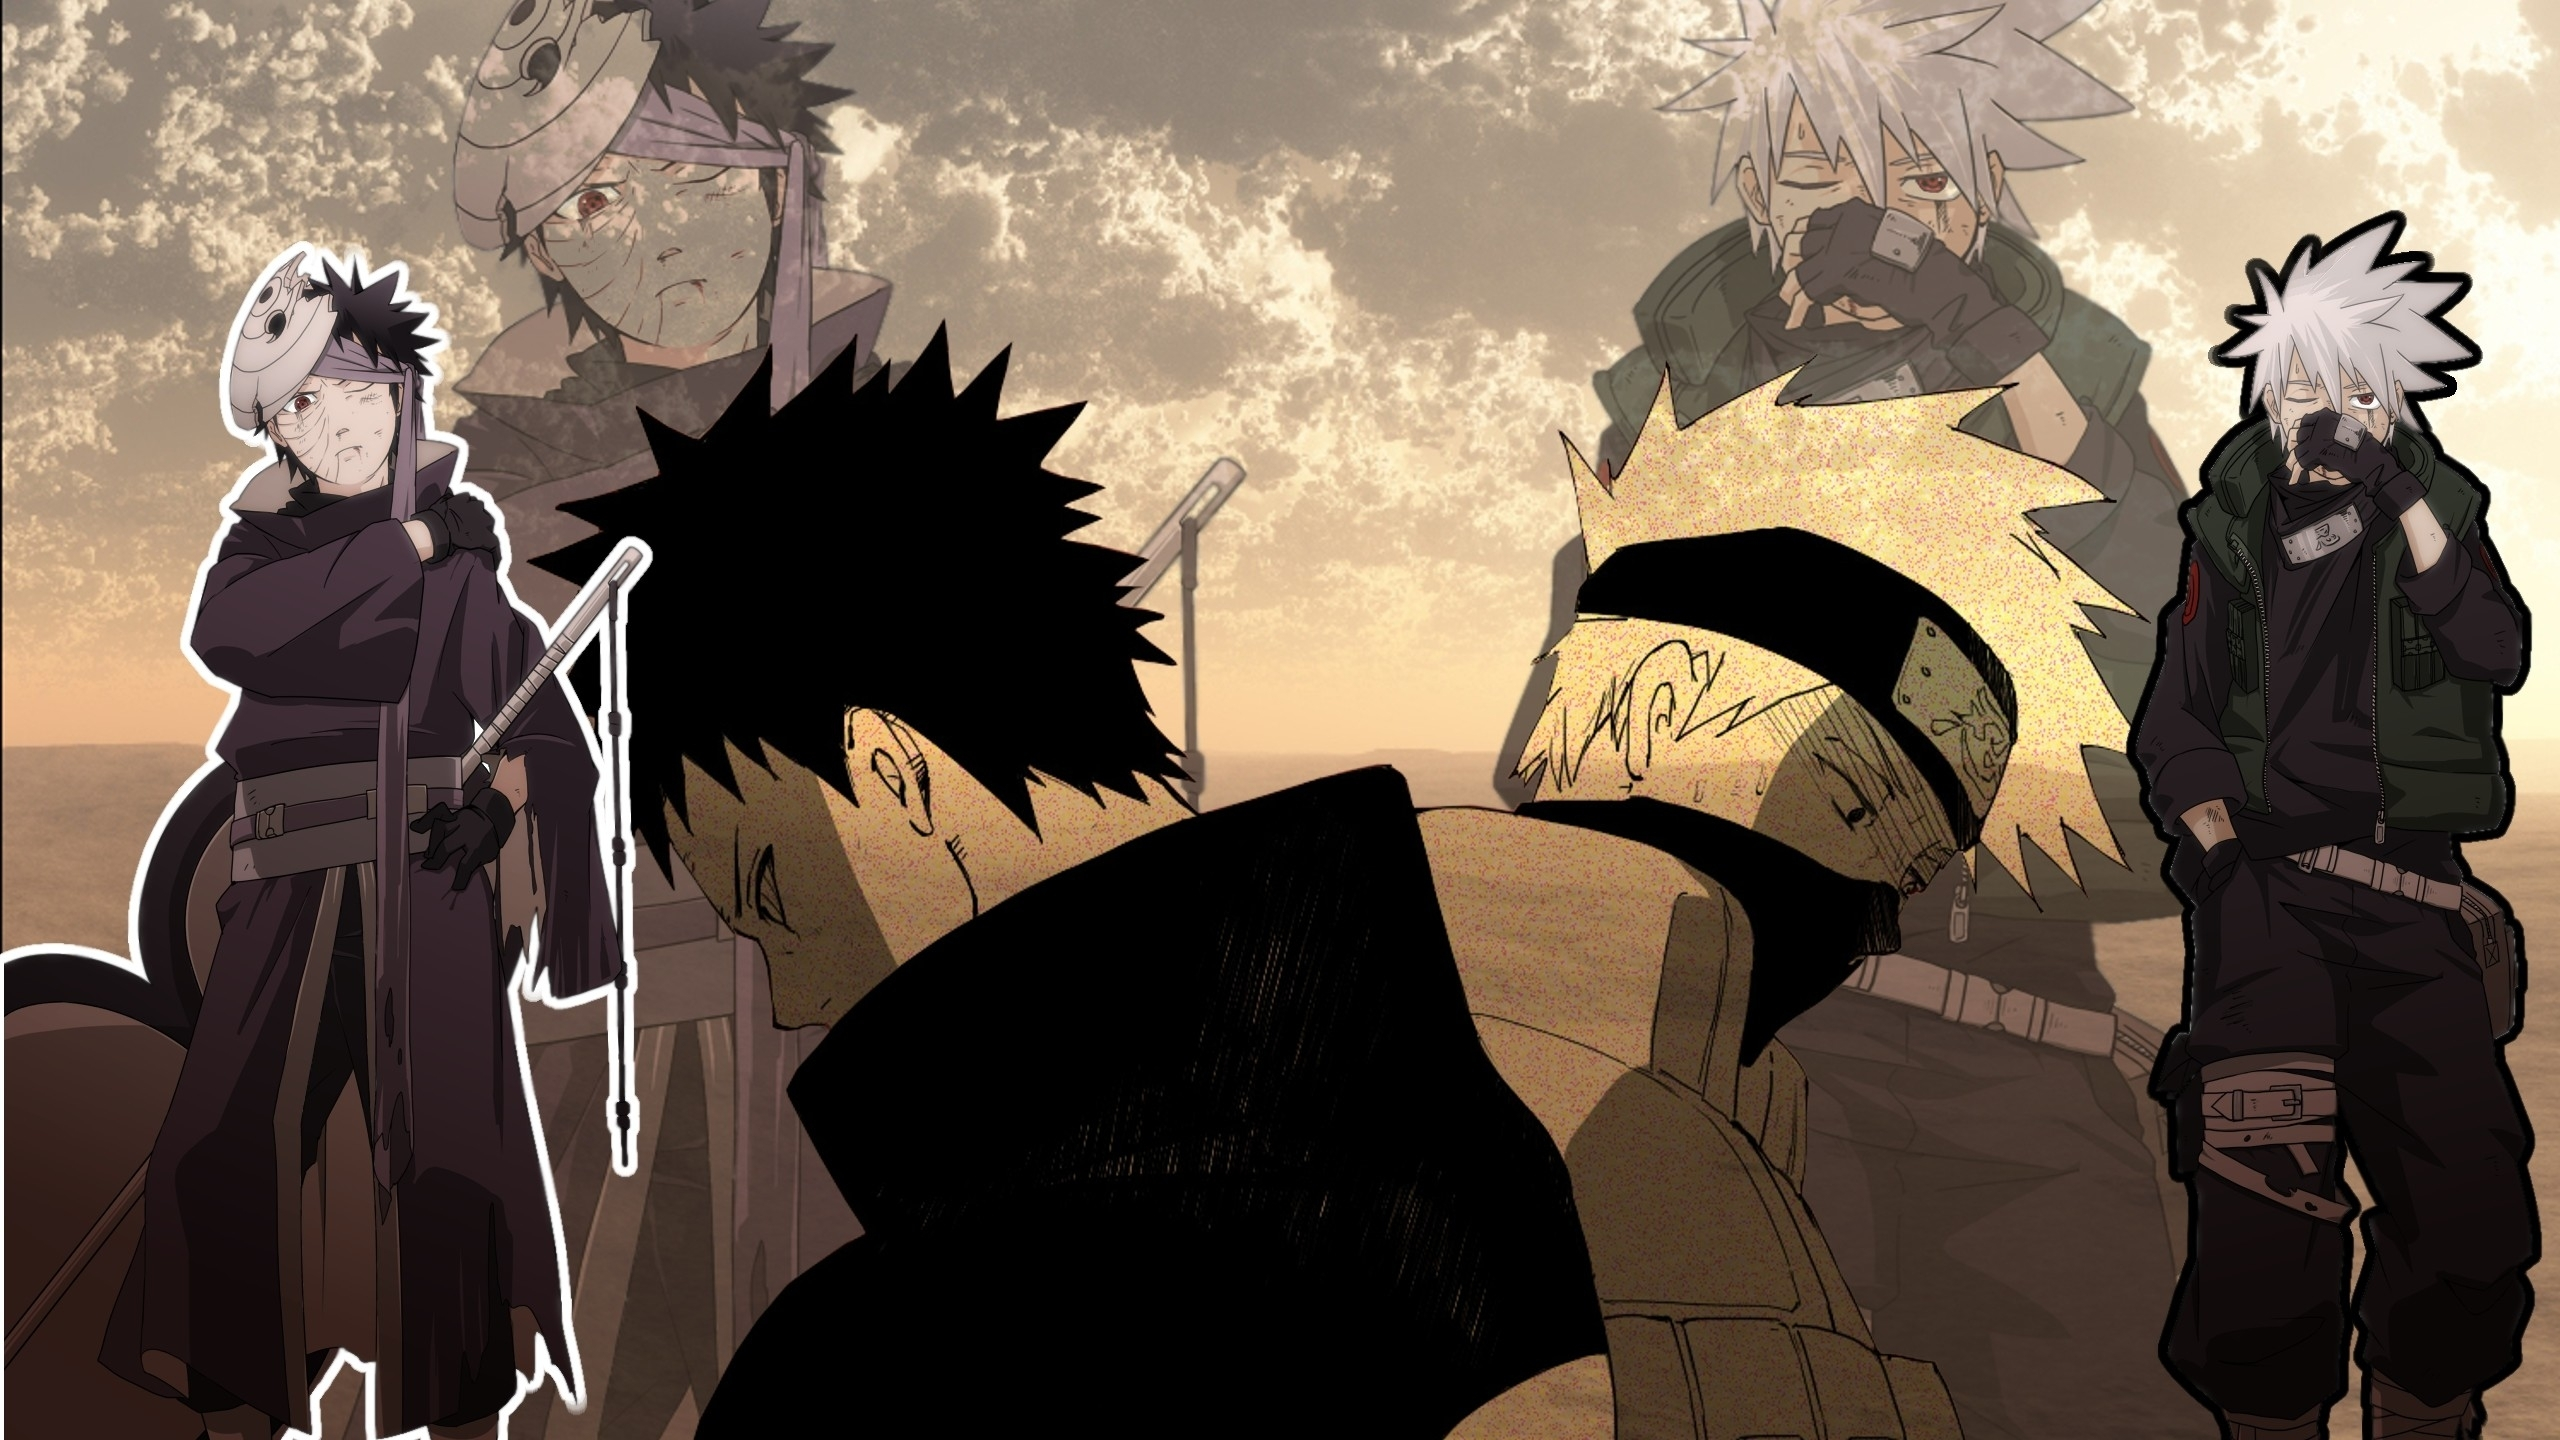 obito vs kakashi wallpaper (74+ images)